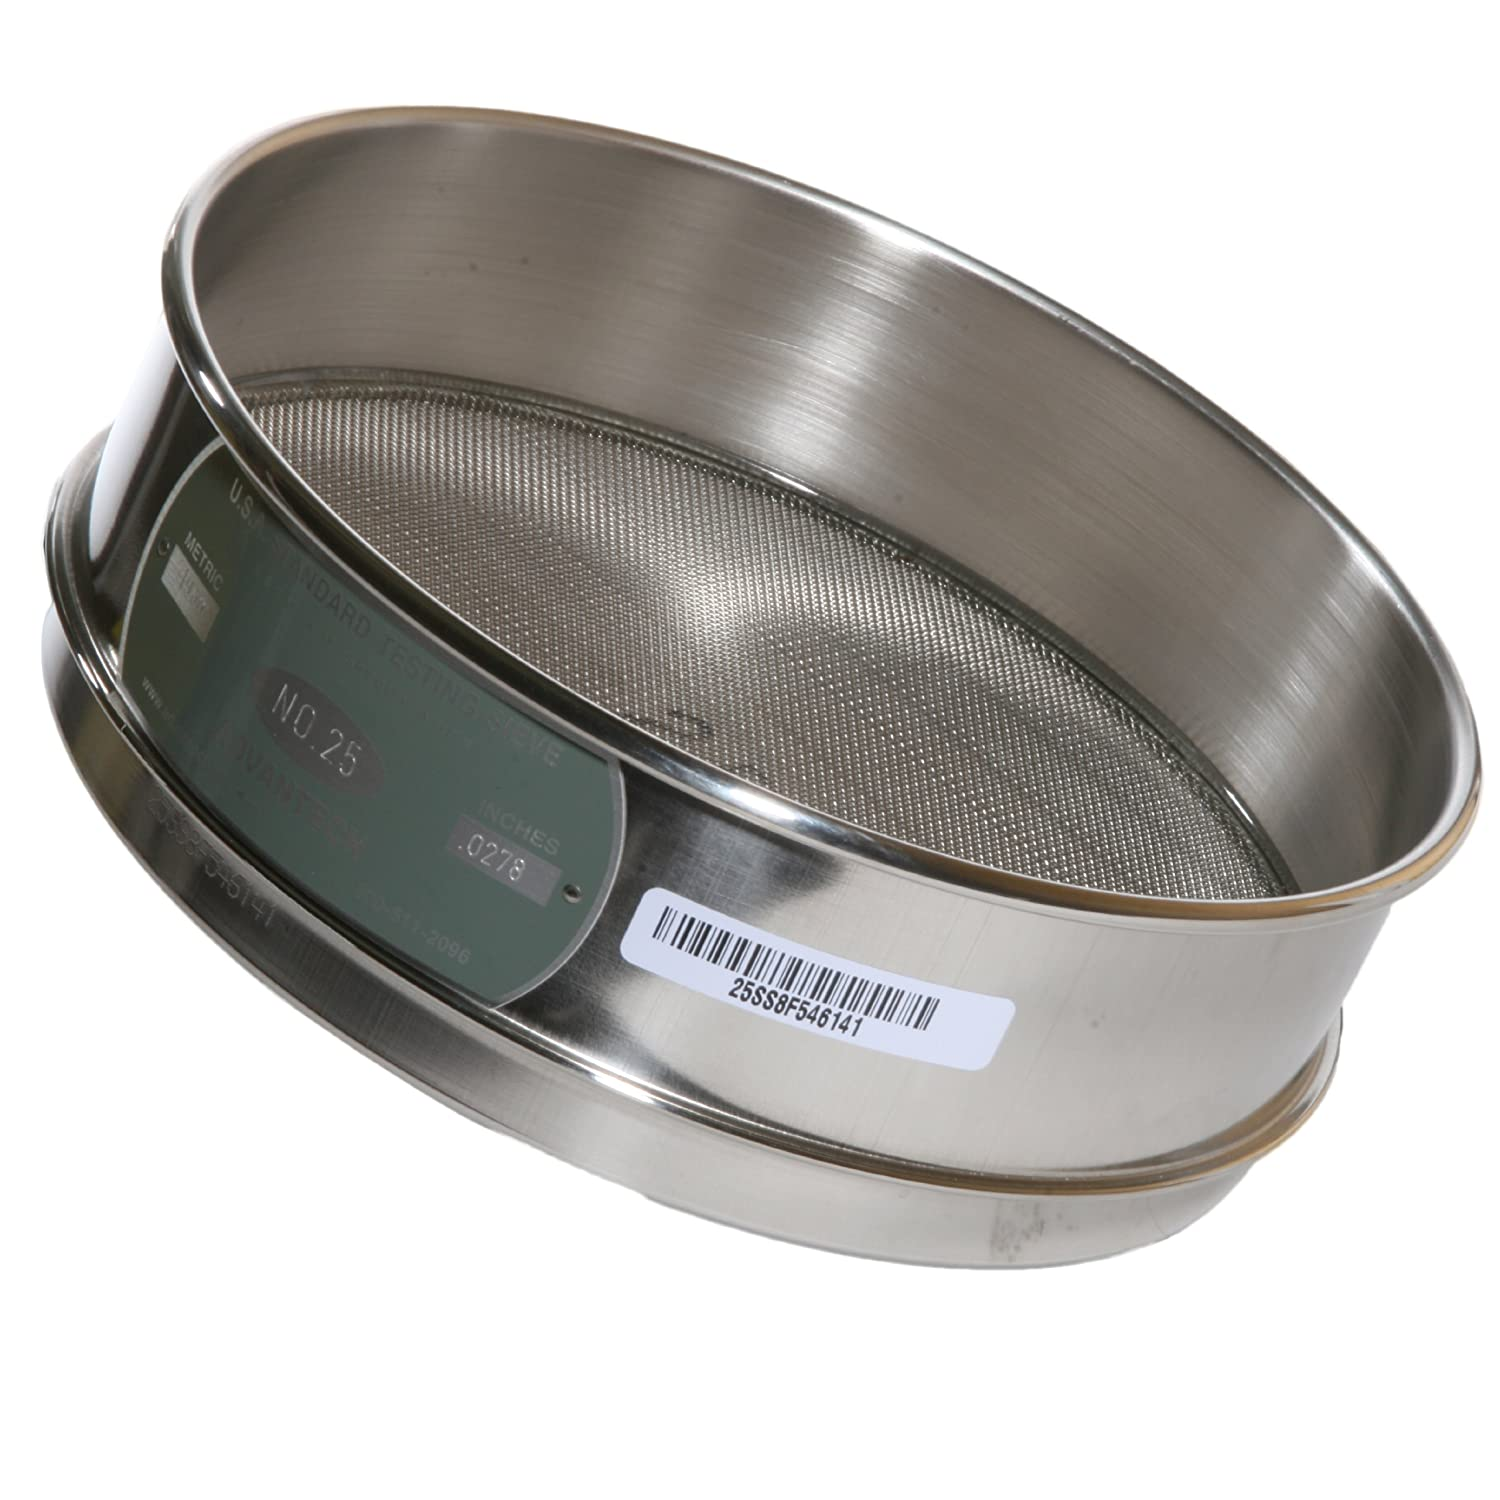 Advantech Stainless Steel Test Sieves, 8' Diameter, #25 Mesh, Full Height 8 Diameter 25SS8F